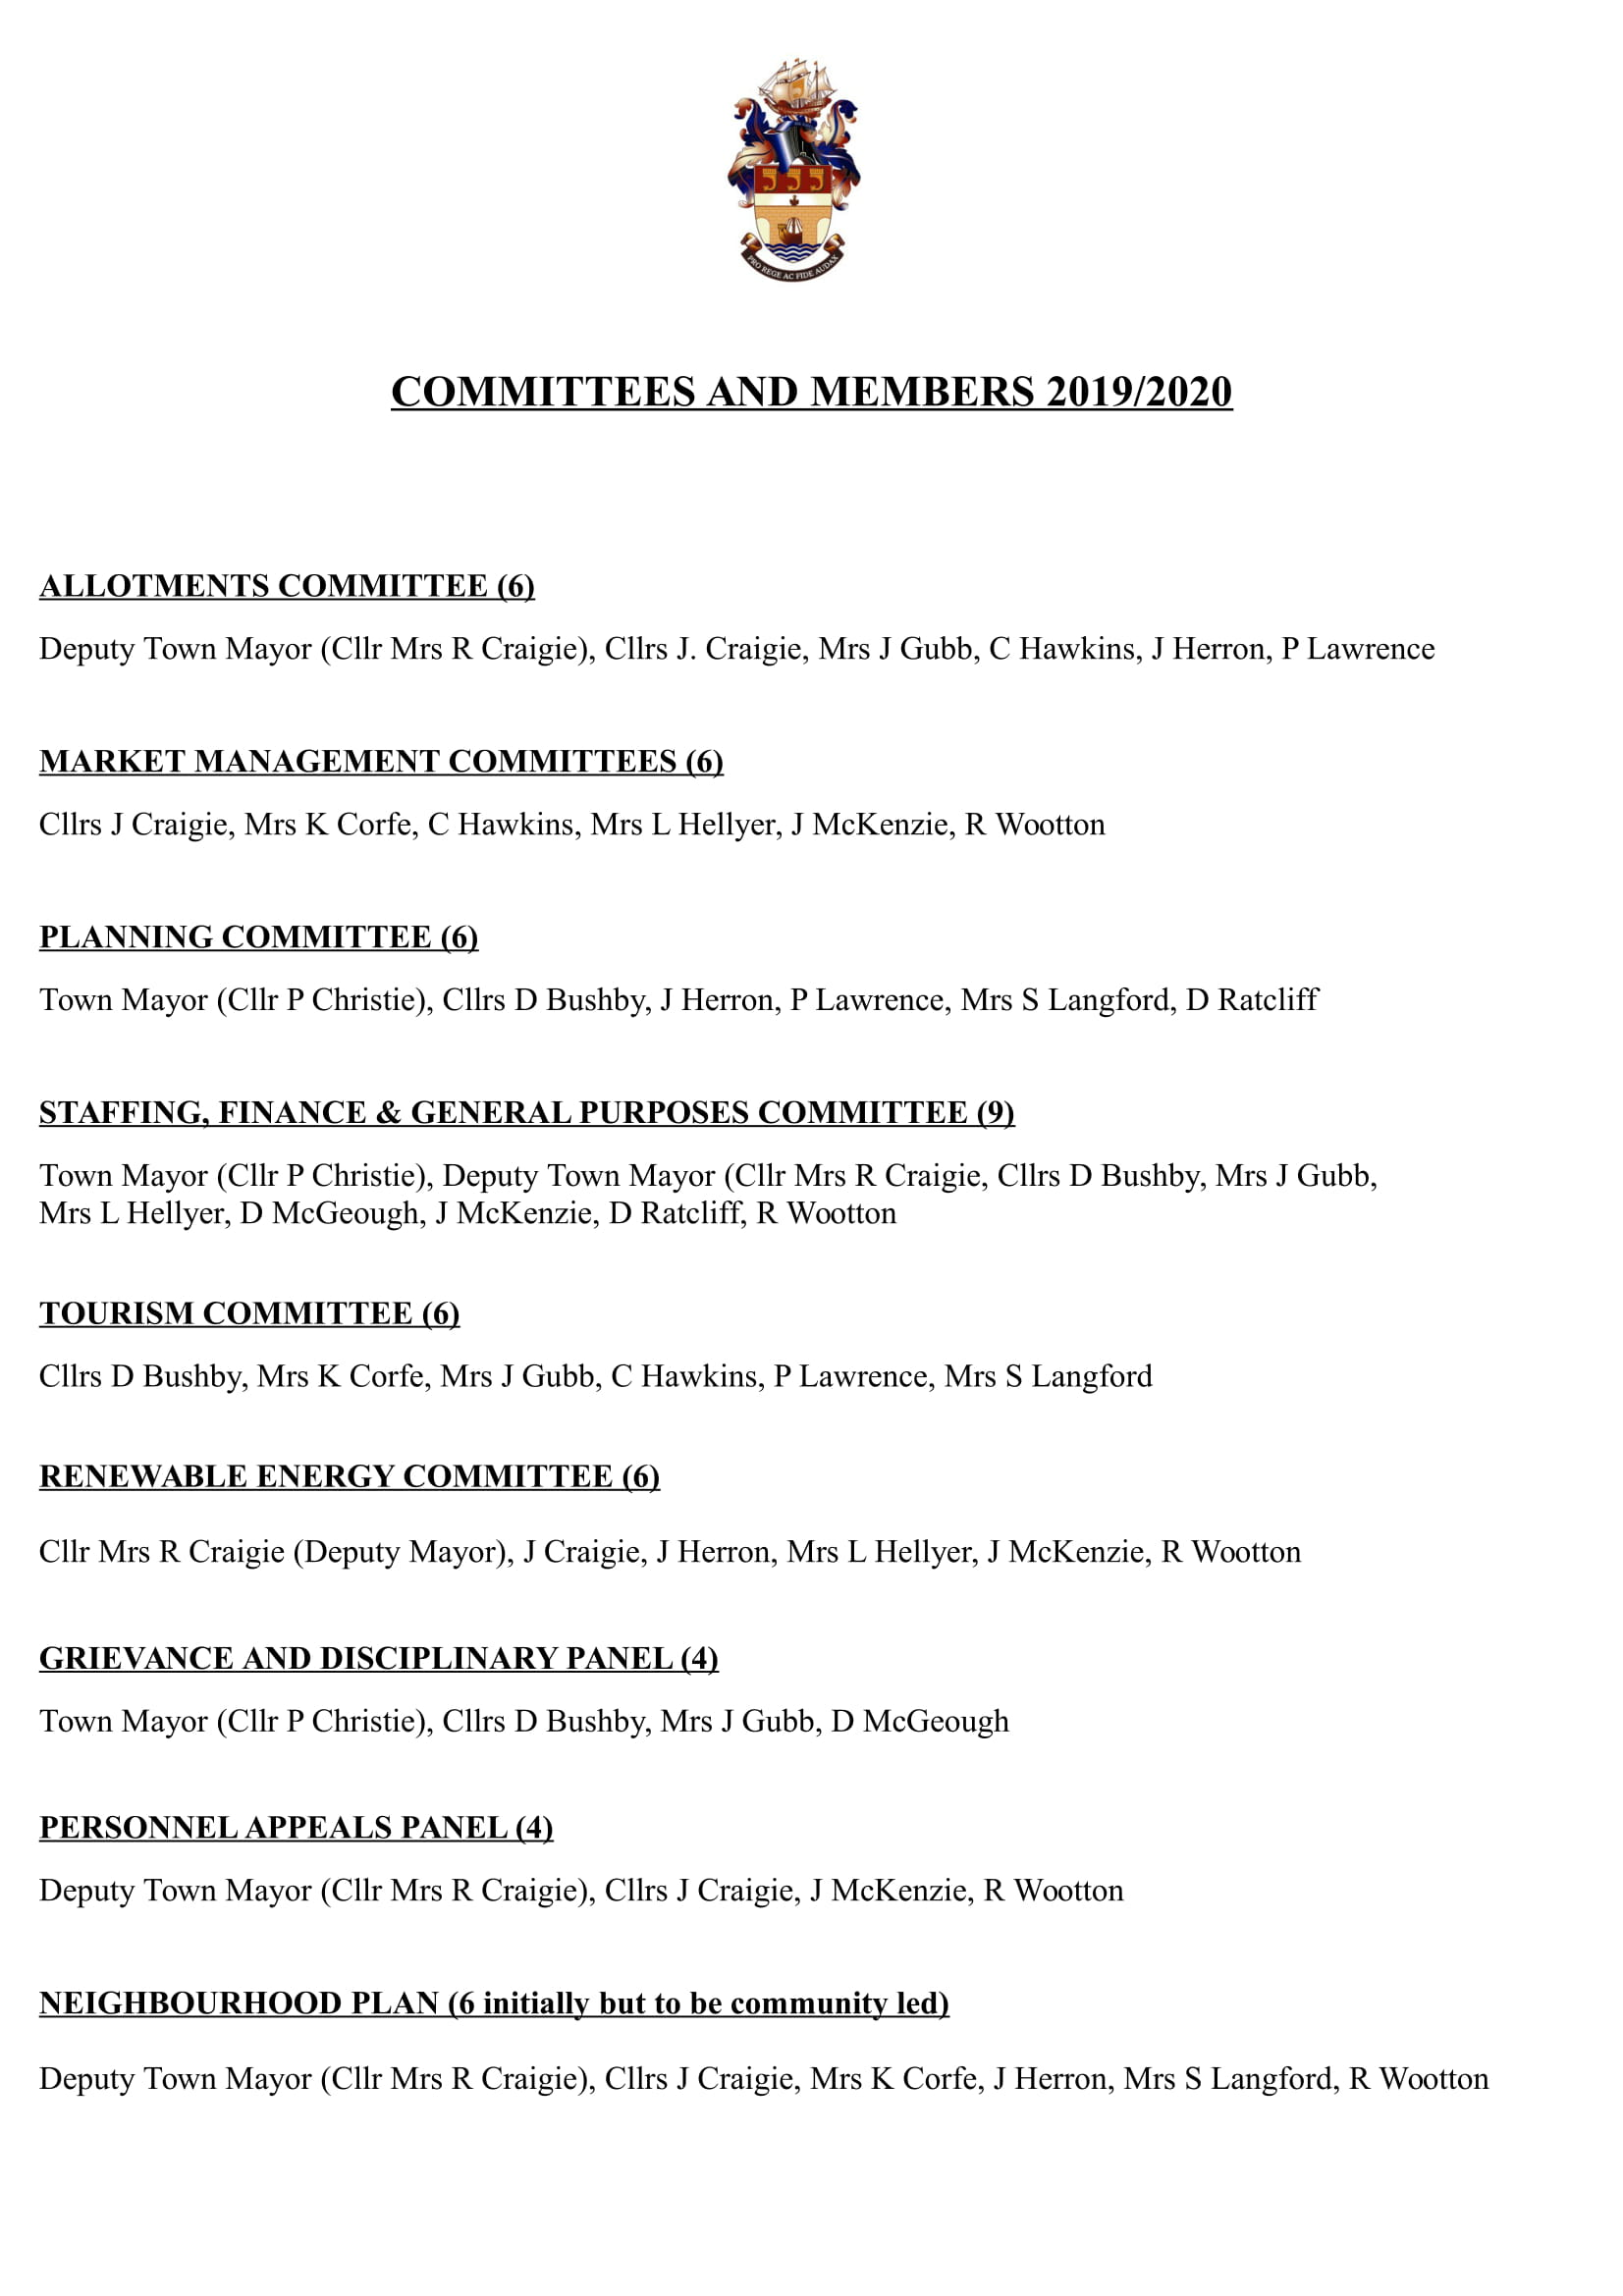 190516 Committees and Members 2019 2020